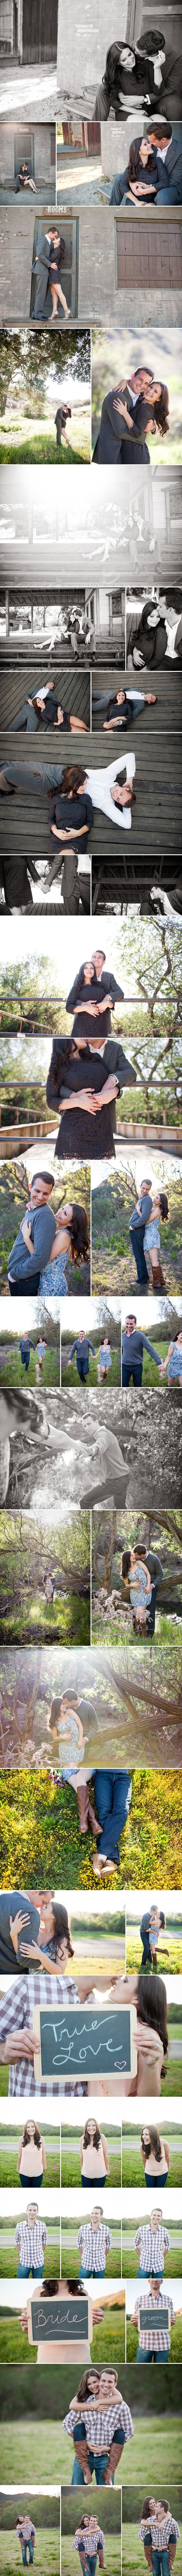 Melanie + Charlie: Southern California Engagement Session - Marianne Wilson…                                                                                                                                                                                 More